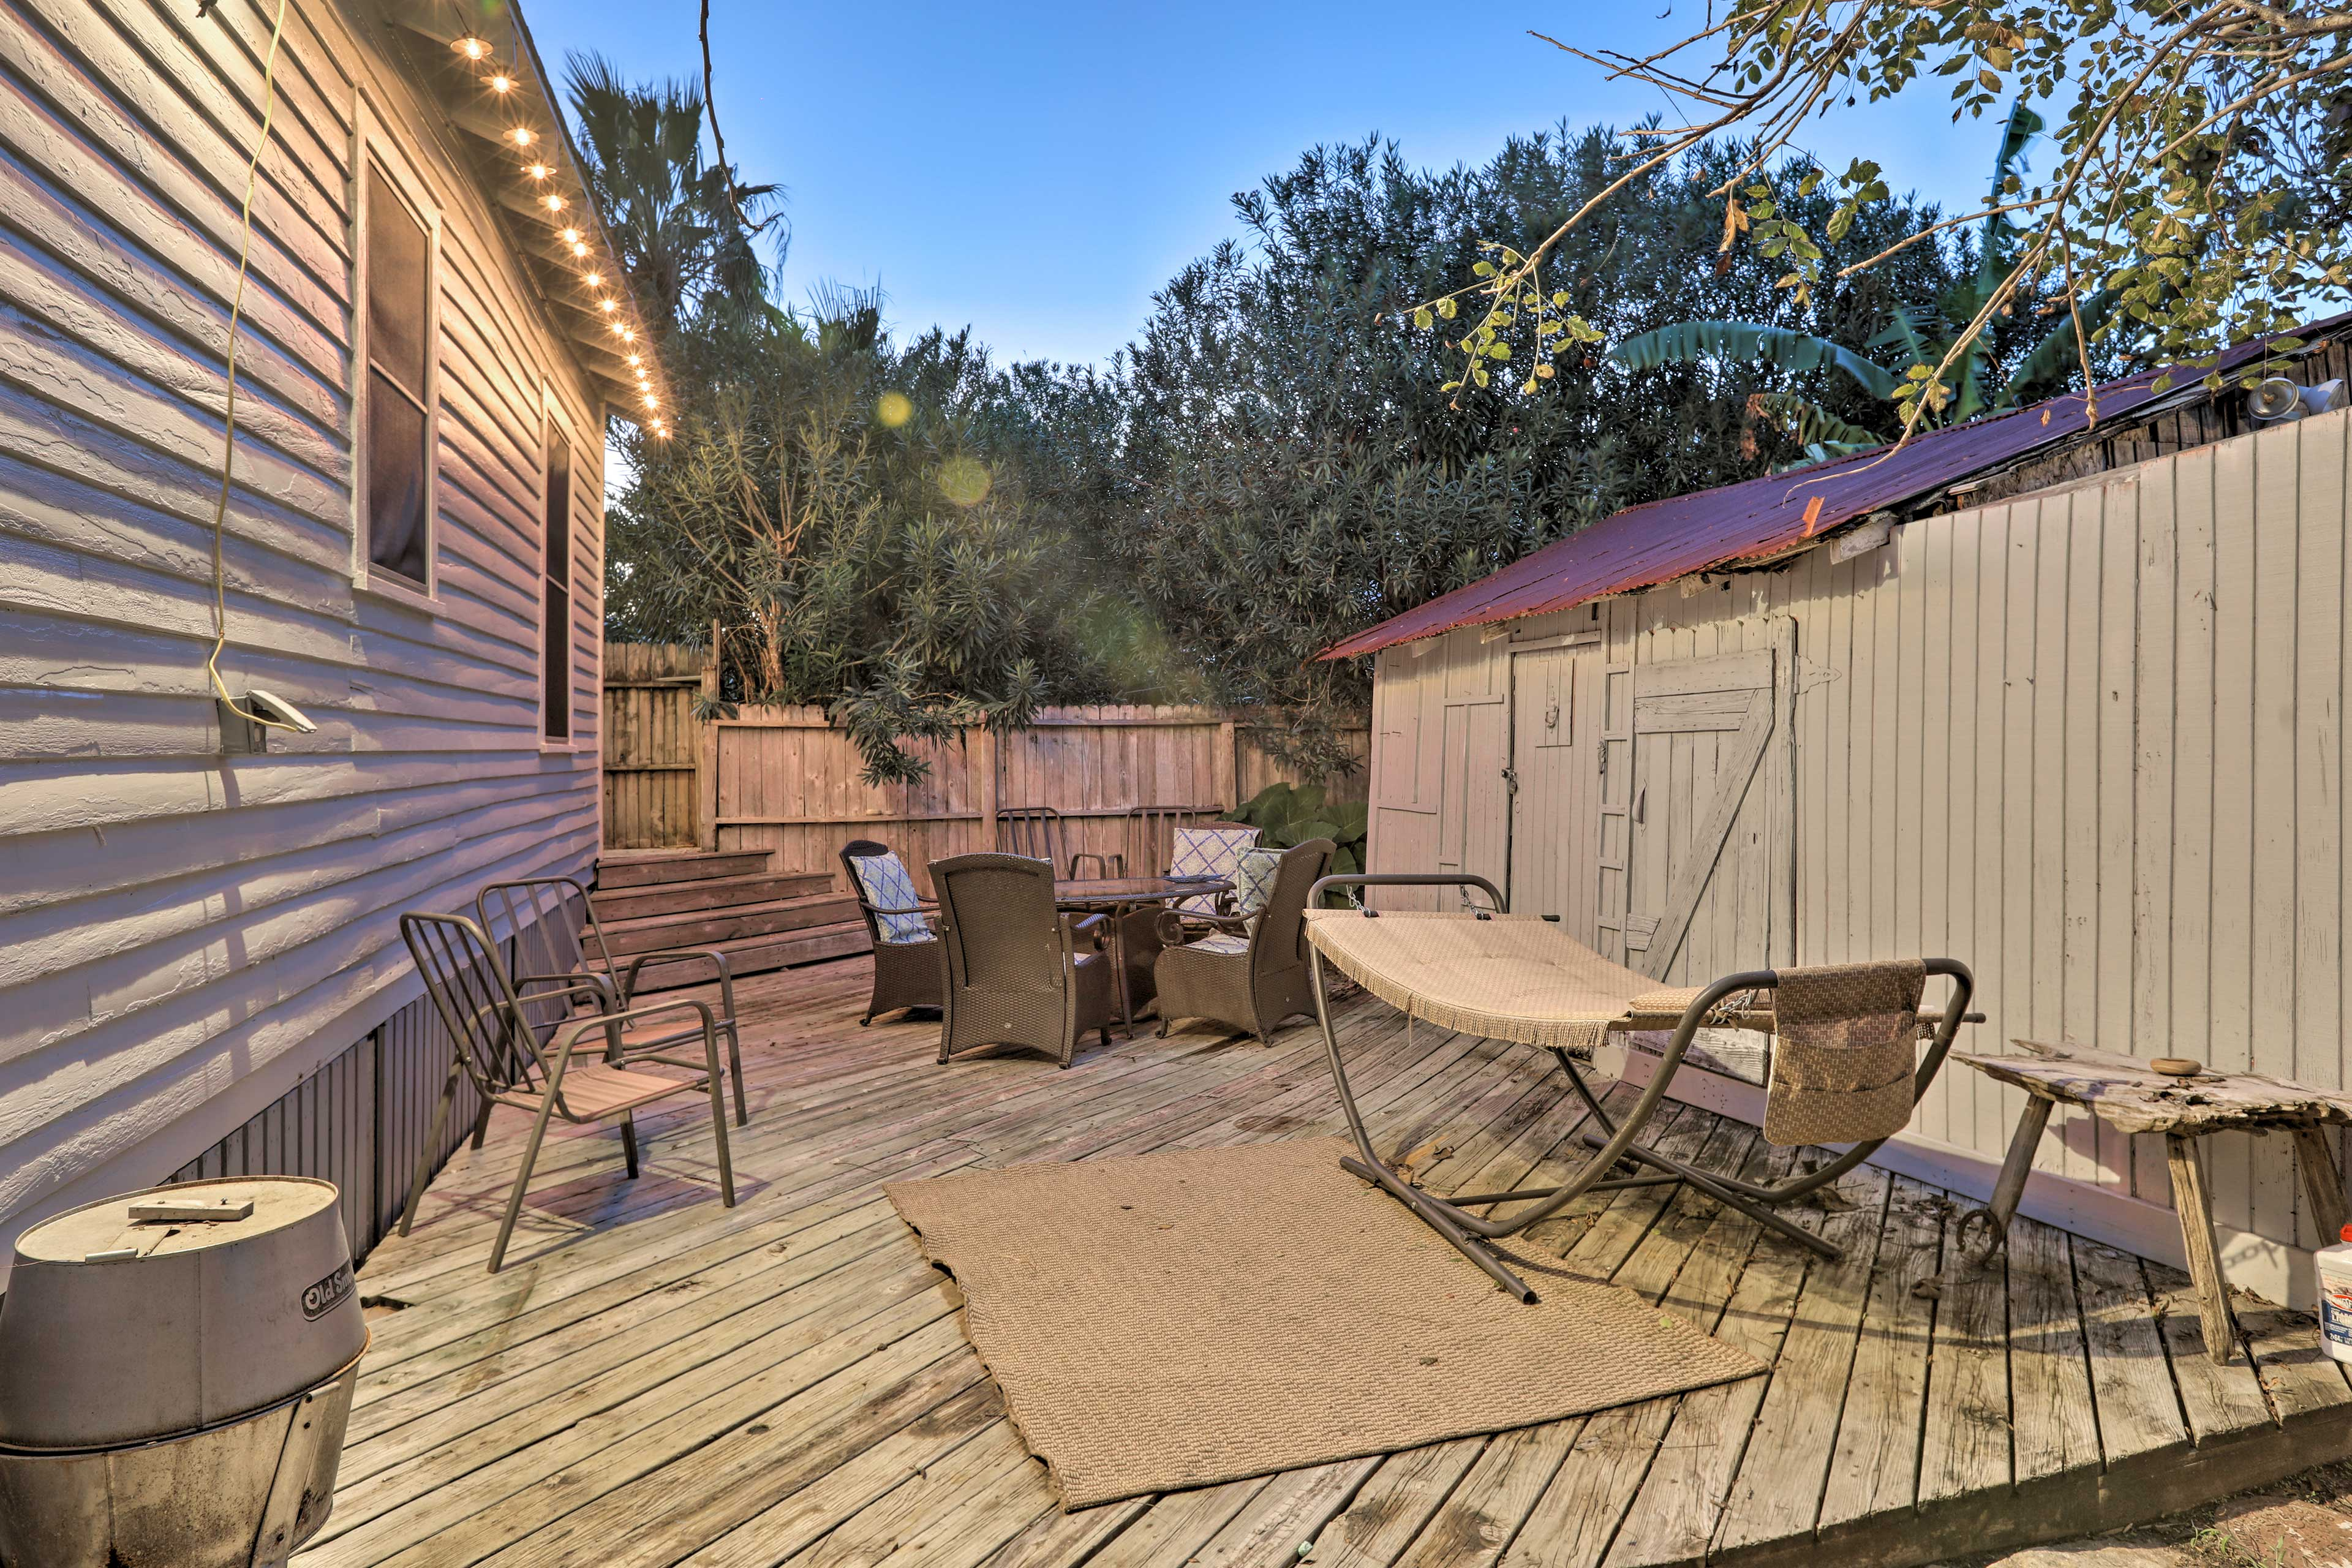 Your group of 6 will love lounging in the private fenced backyard.